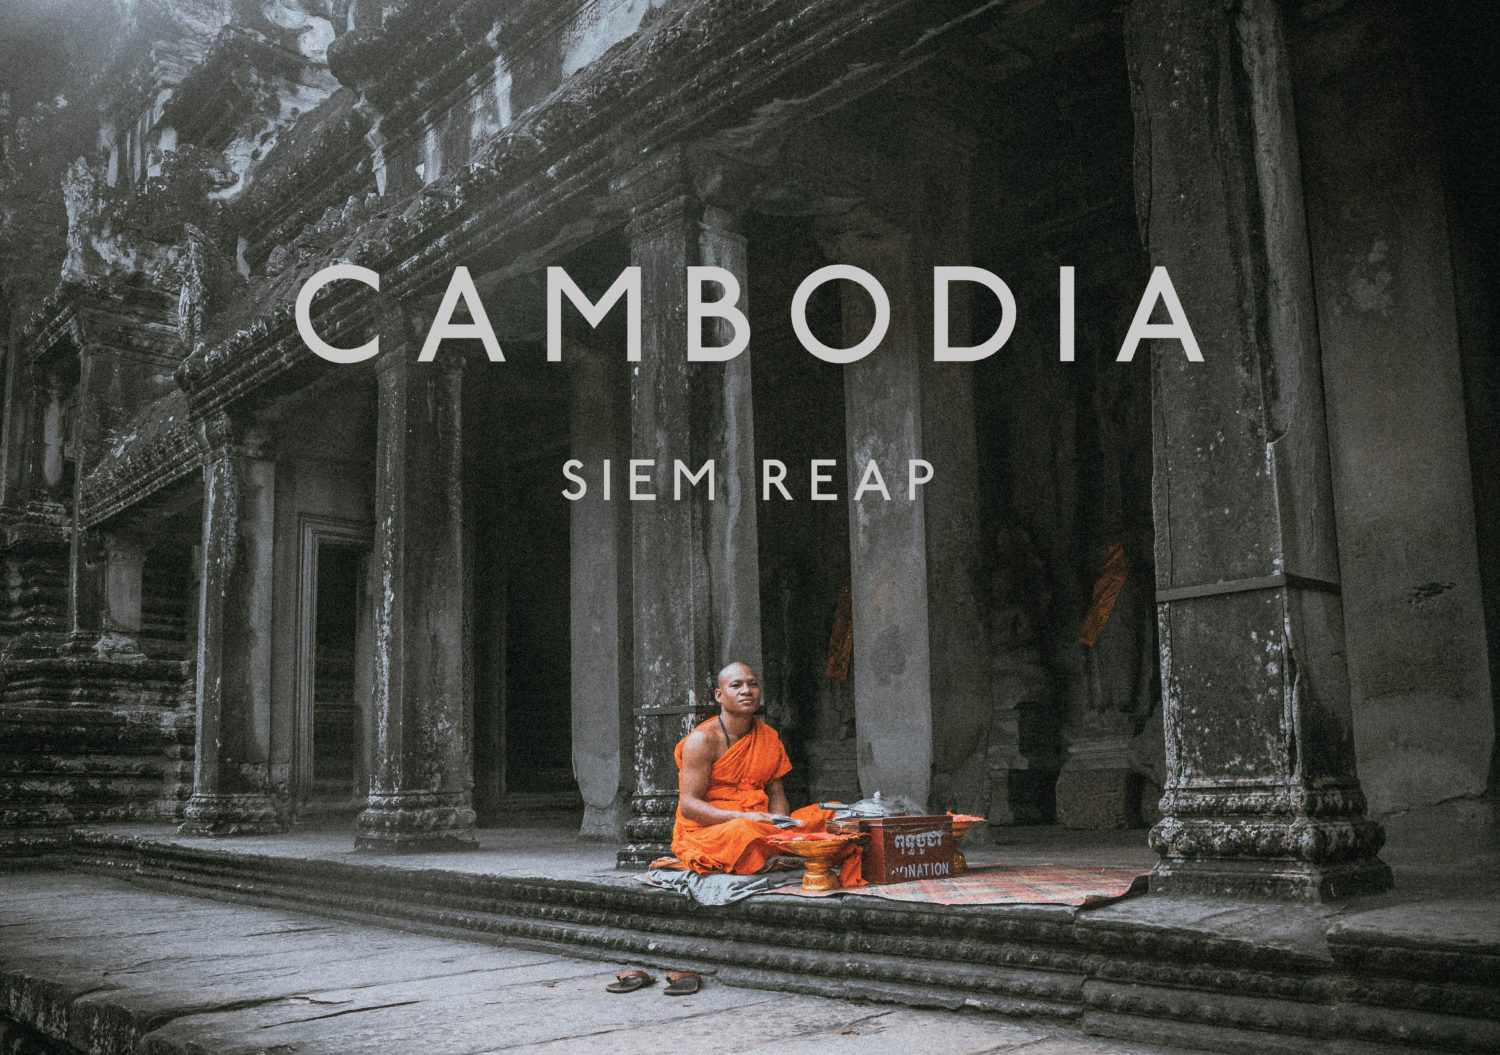 cambodia monkt traveling to siem reap angkor wat temples